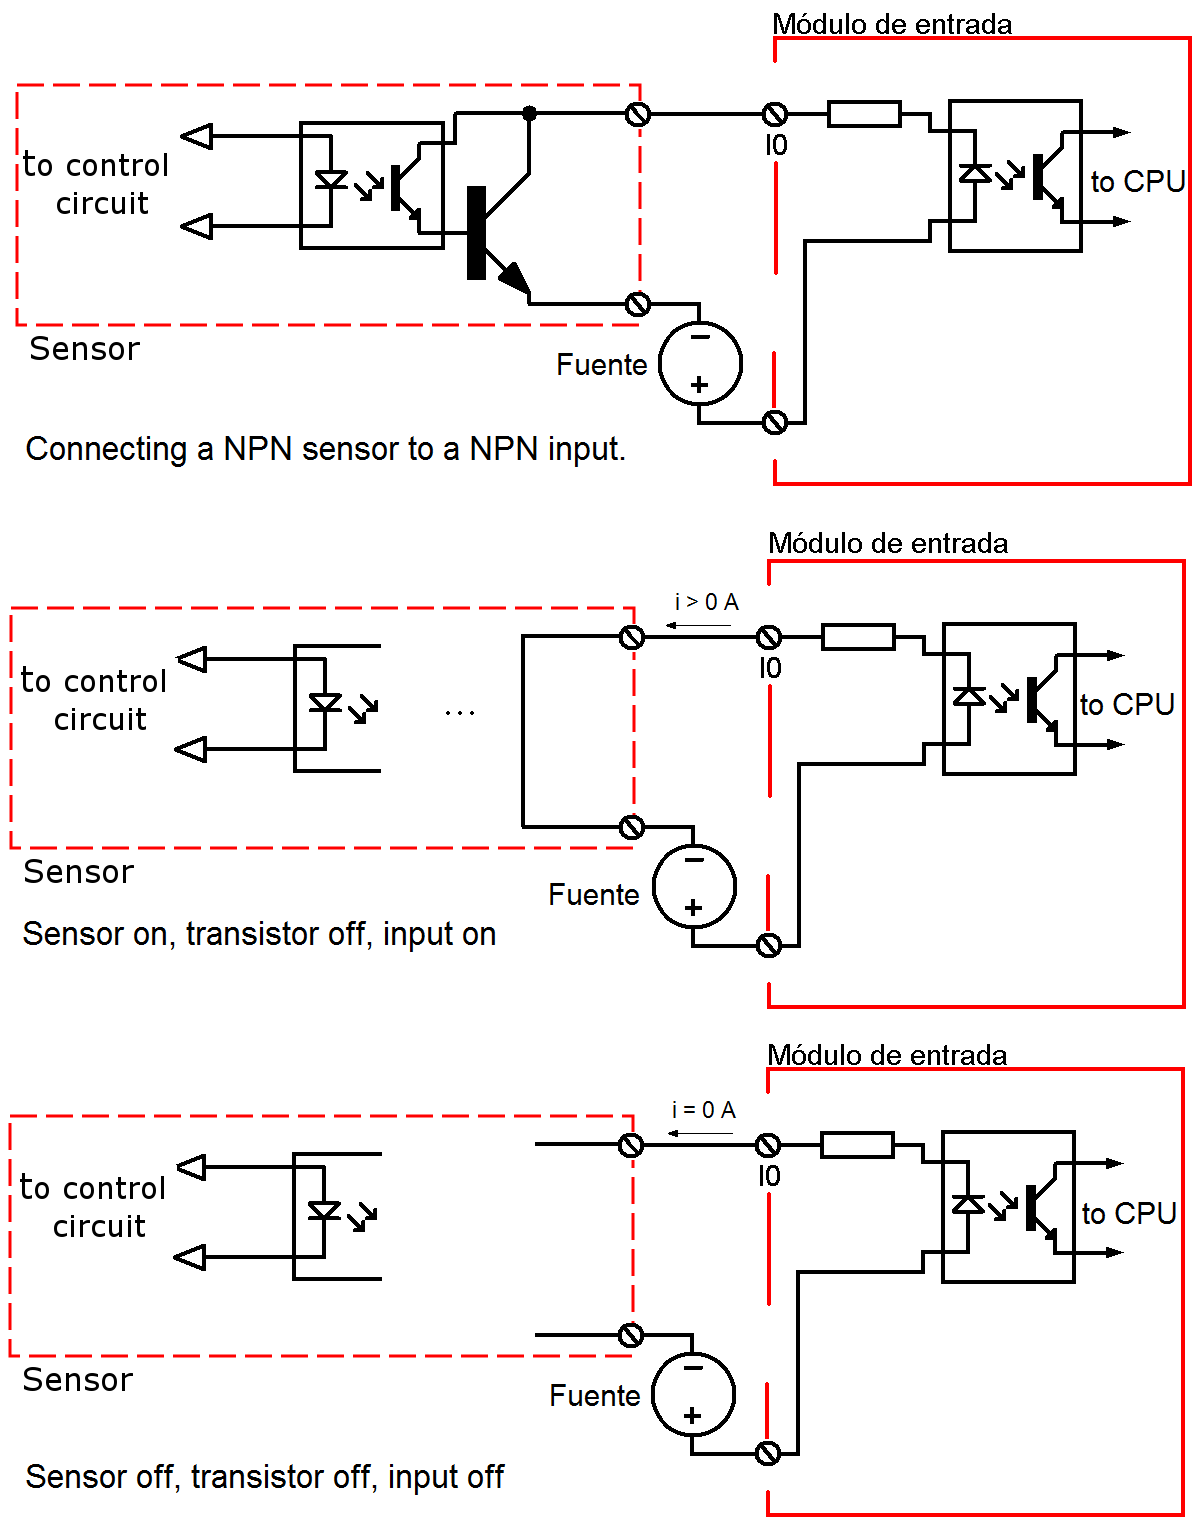 Pnp Sensor Plc Wiring Diy Enthusiasts Diagrams Inductive Proximity 3 Wire Diagram Can I Connect A Npn To Input Control Real English Rh Controlreal Com Examples